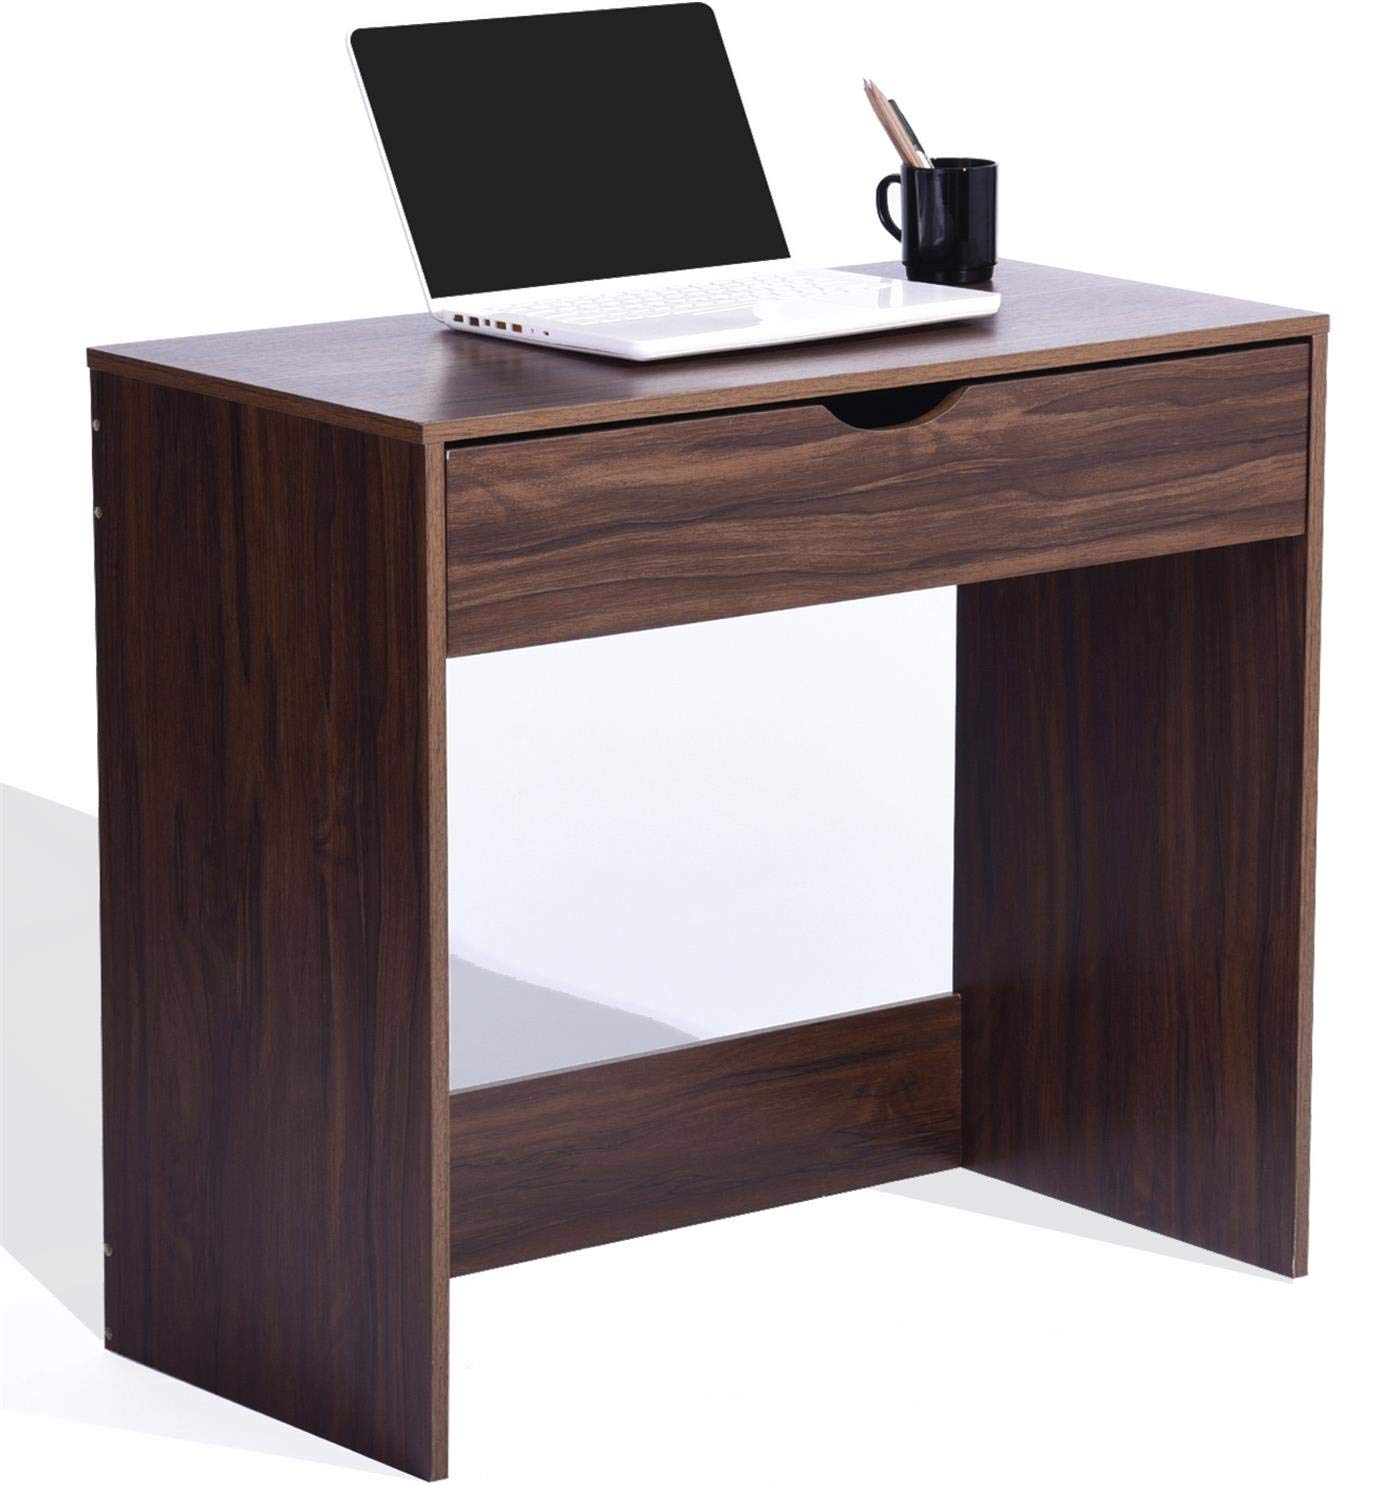 Amazoncom Computer Writing Desk Students Study Table With 1